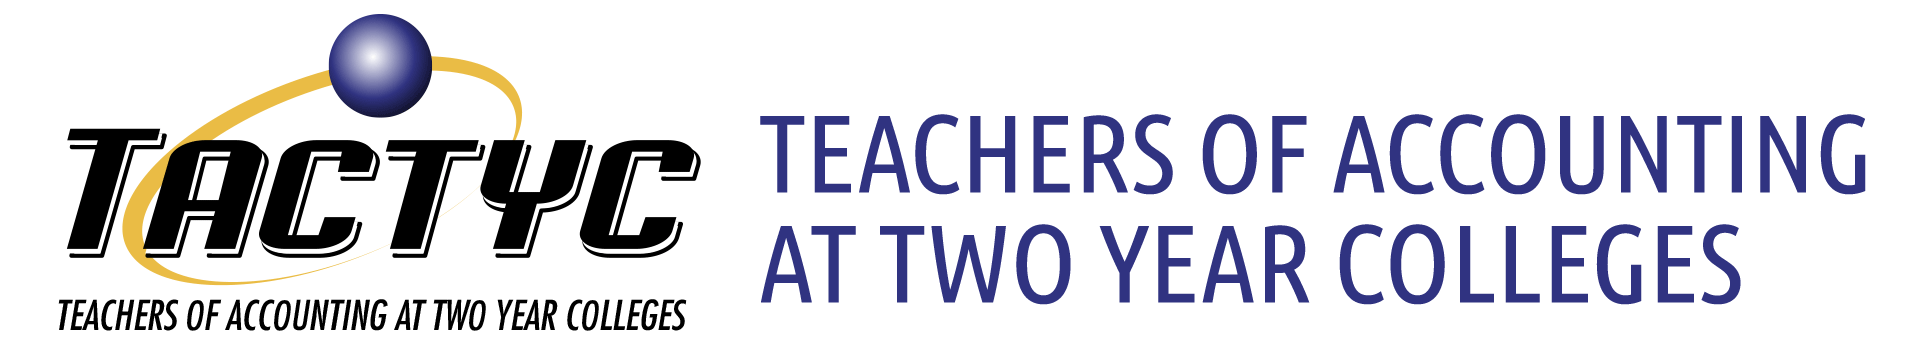 Teachers of Accounting at Two-Year Colleges (TACTYC) - 2019 Session